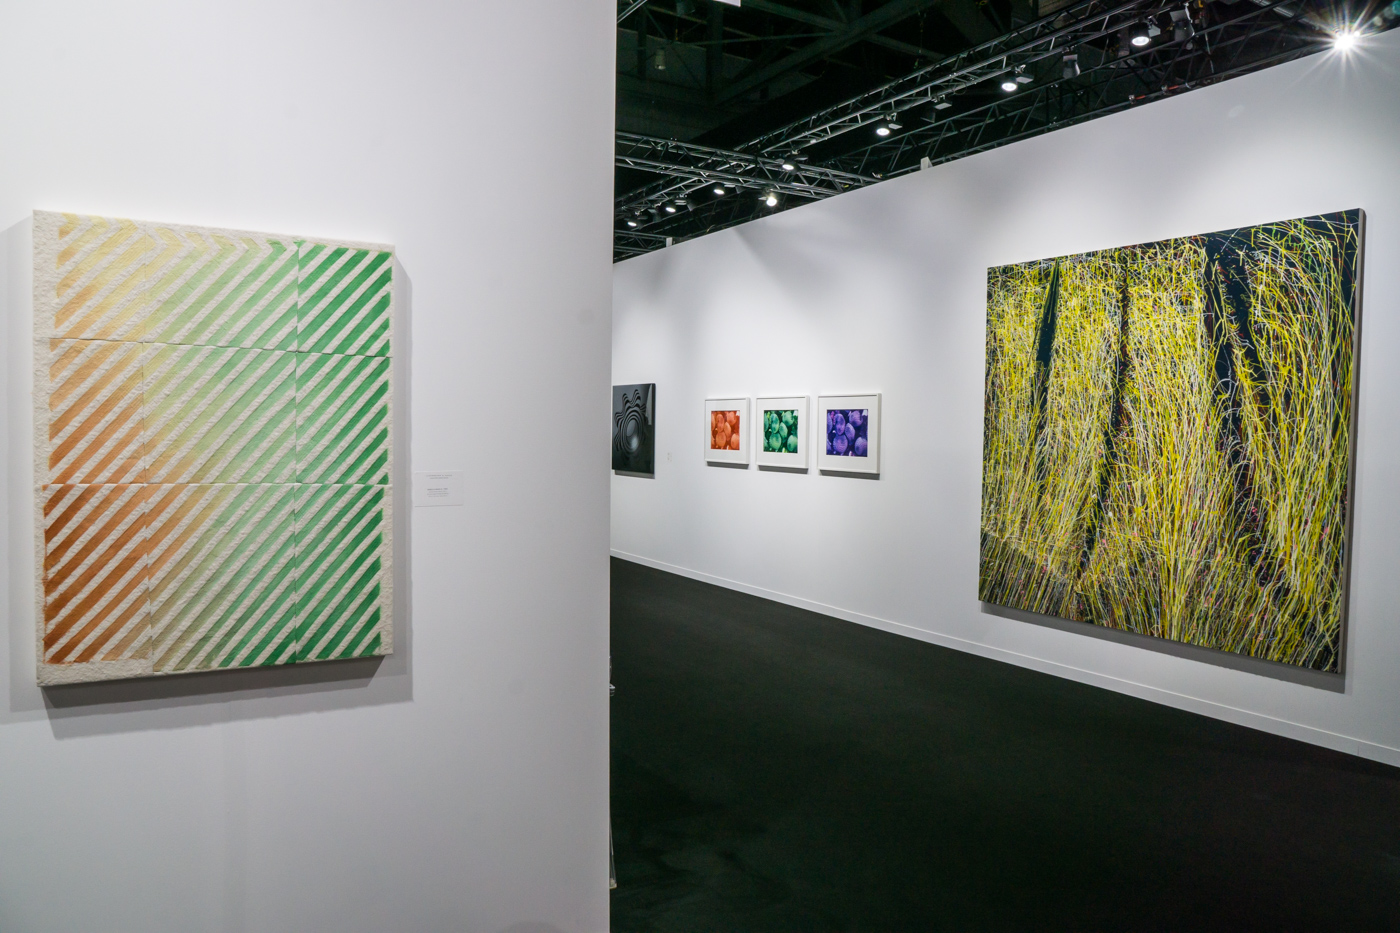 Salon d art contemporain artgen ve 2015 sign gen ve - Salon art contemporain ...